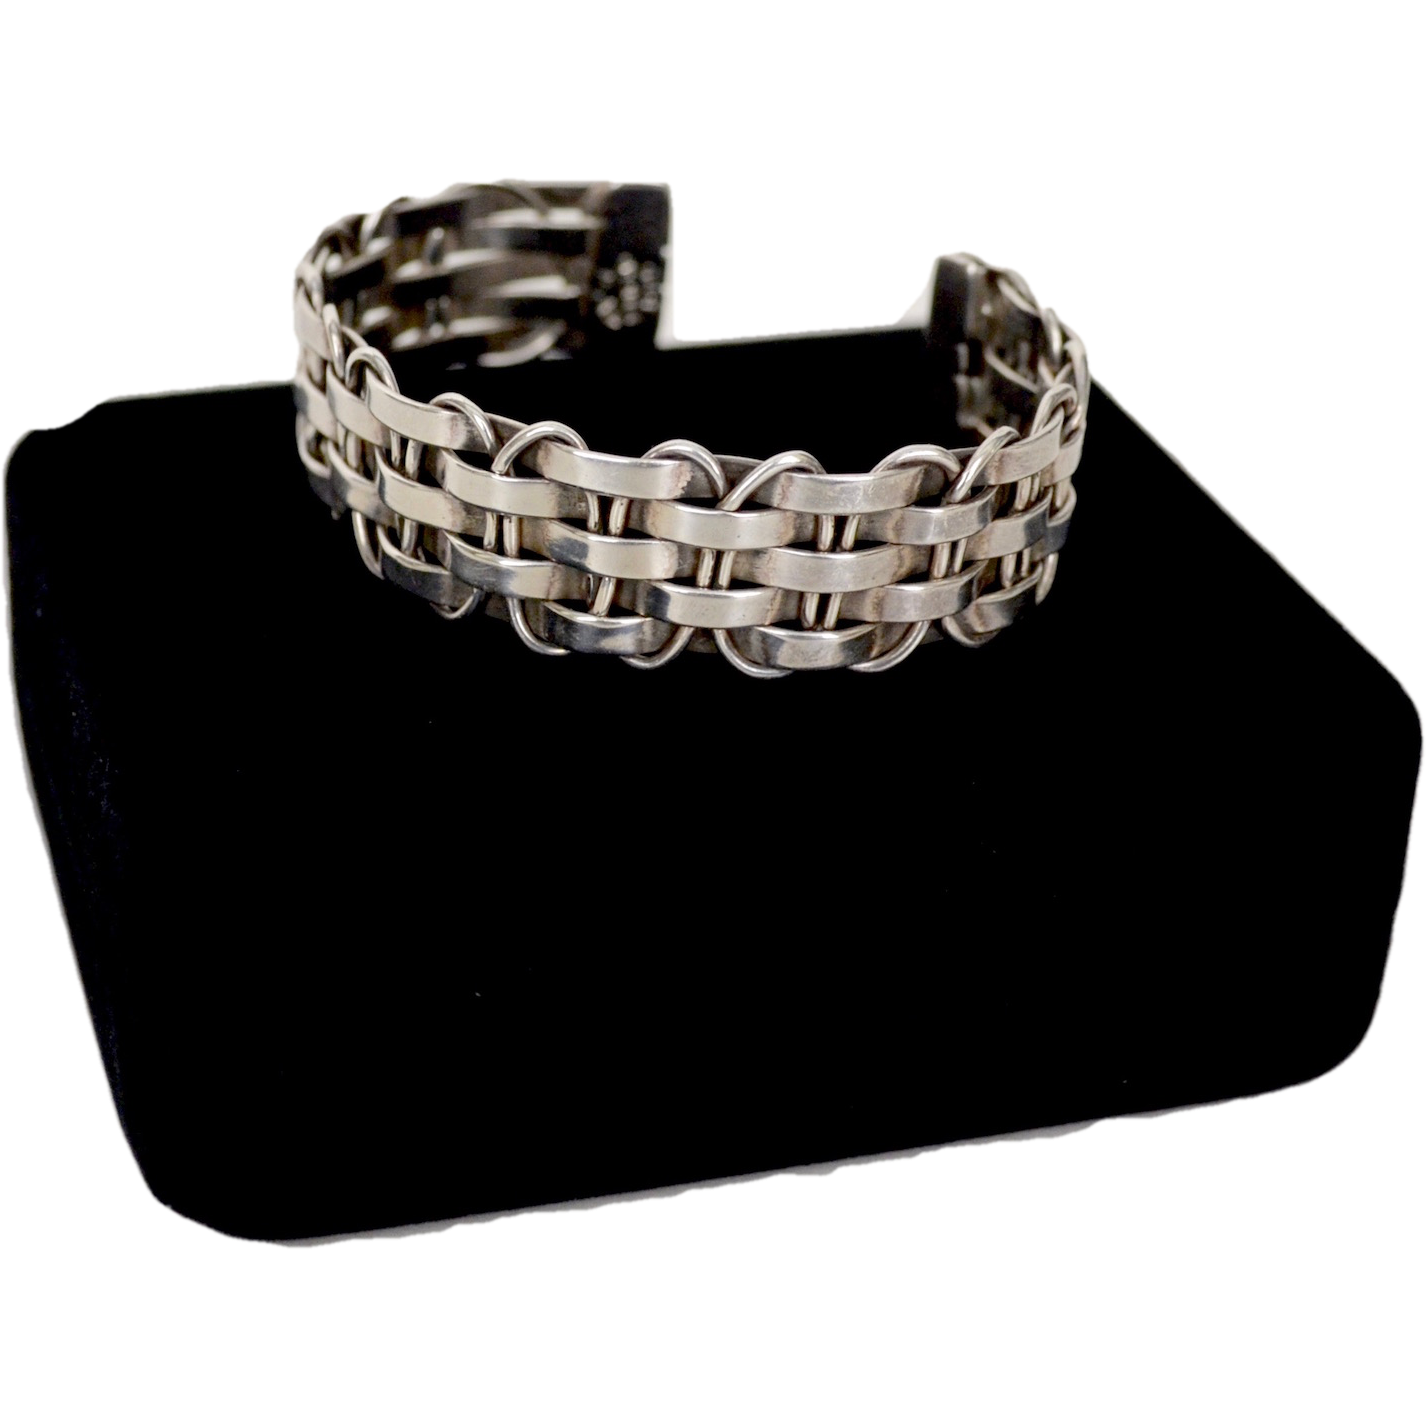 How To Basket Weave Bracelet : Sterling silver basket weave cuff bracelet mexico from